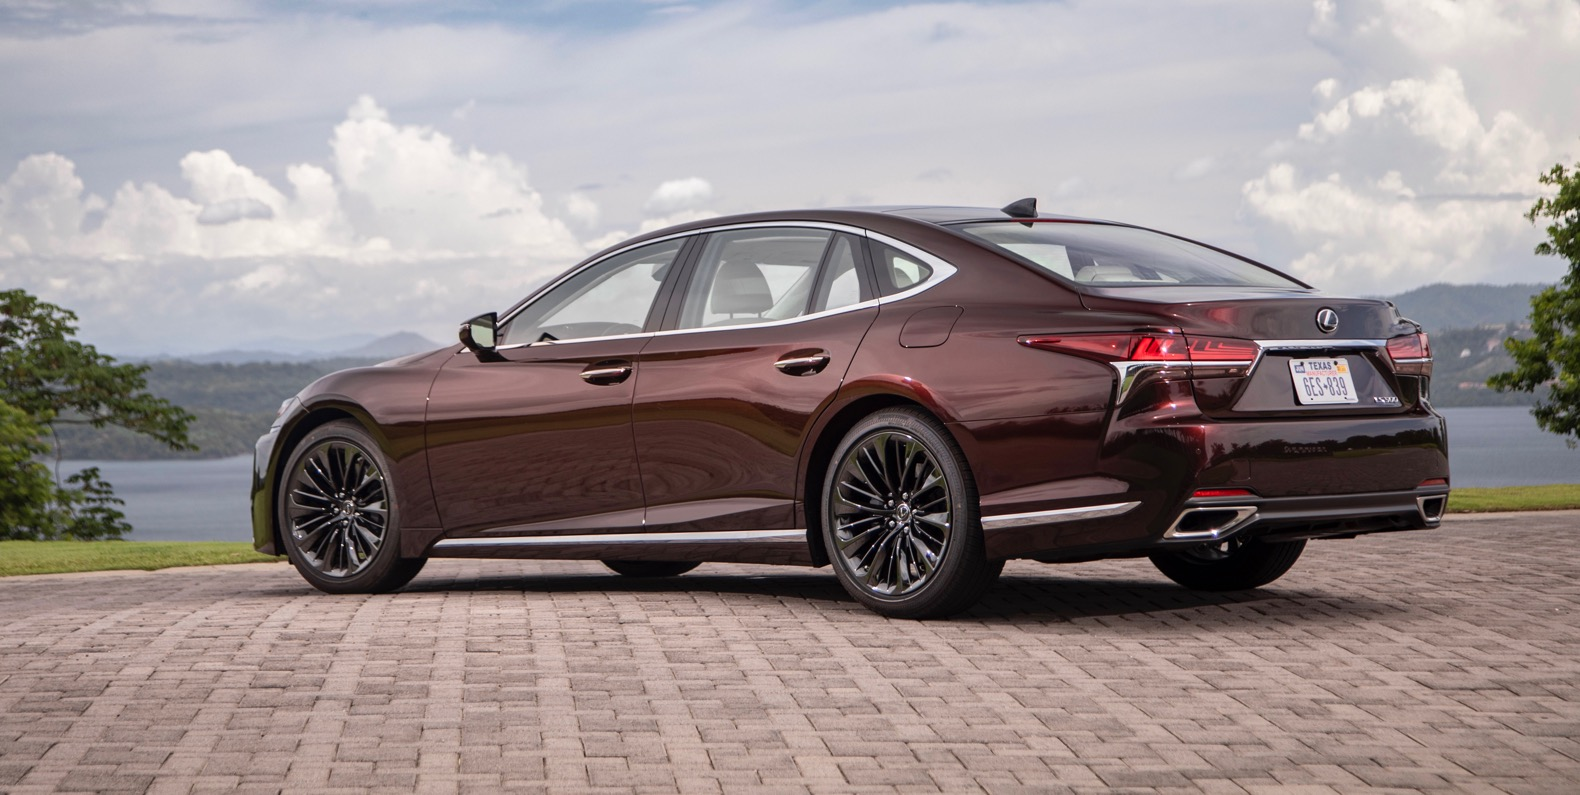 2020 lexus ls 500 inspiration series is limited to only 300 units